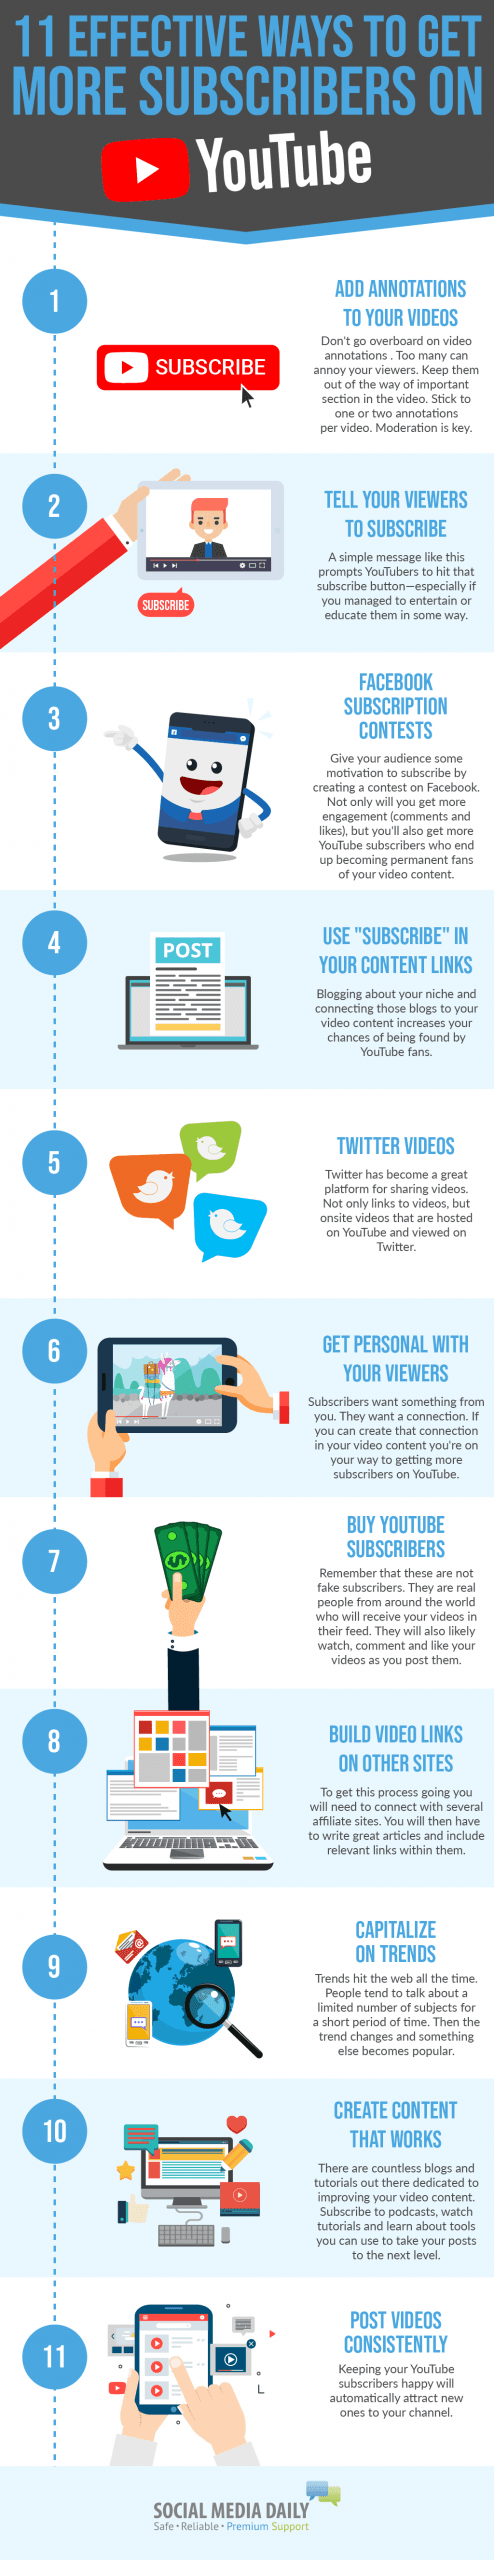 Infographic explaining how to get more subscribers on YouTube in 11 steps